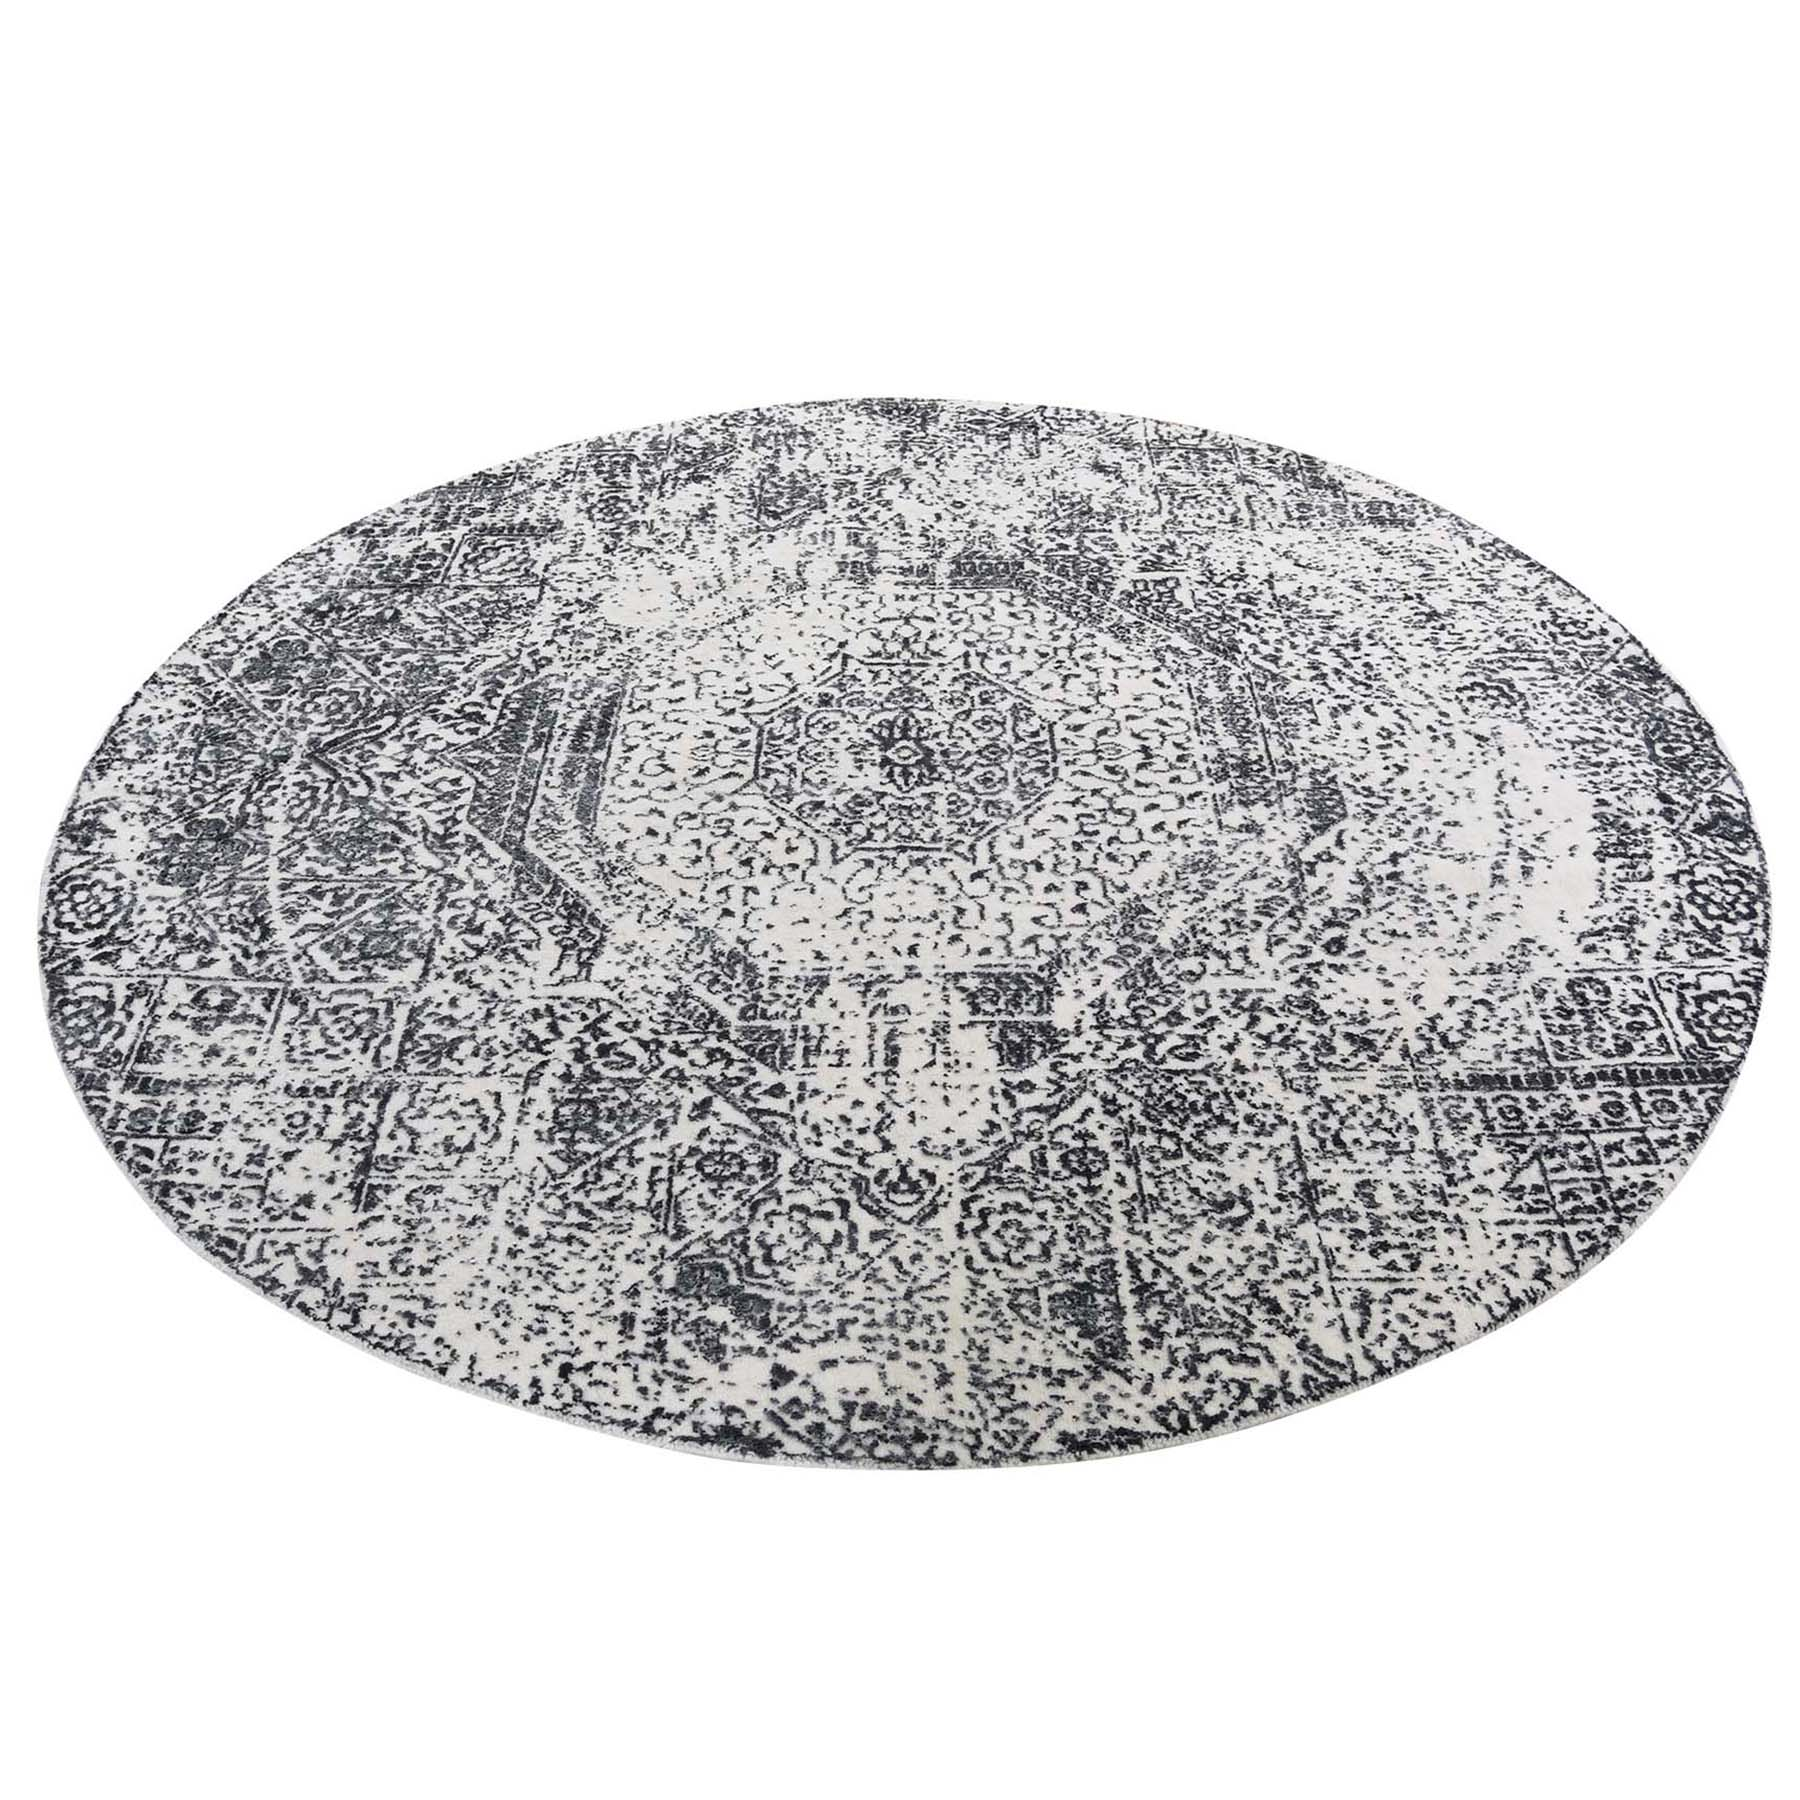 6'X6' Round Ivory Hand-Loomed With Mamluk Design Oriental Rug moad6b8c